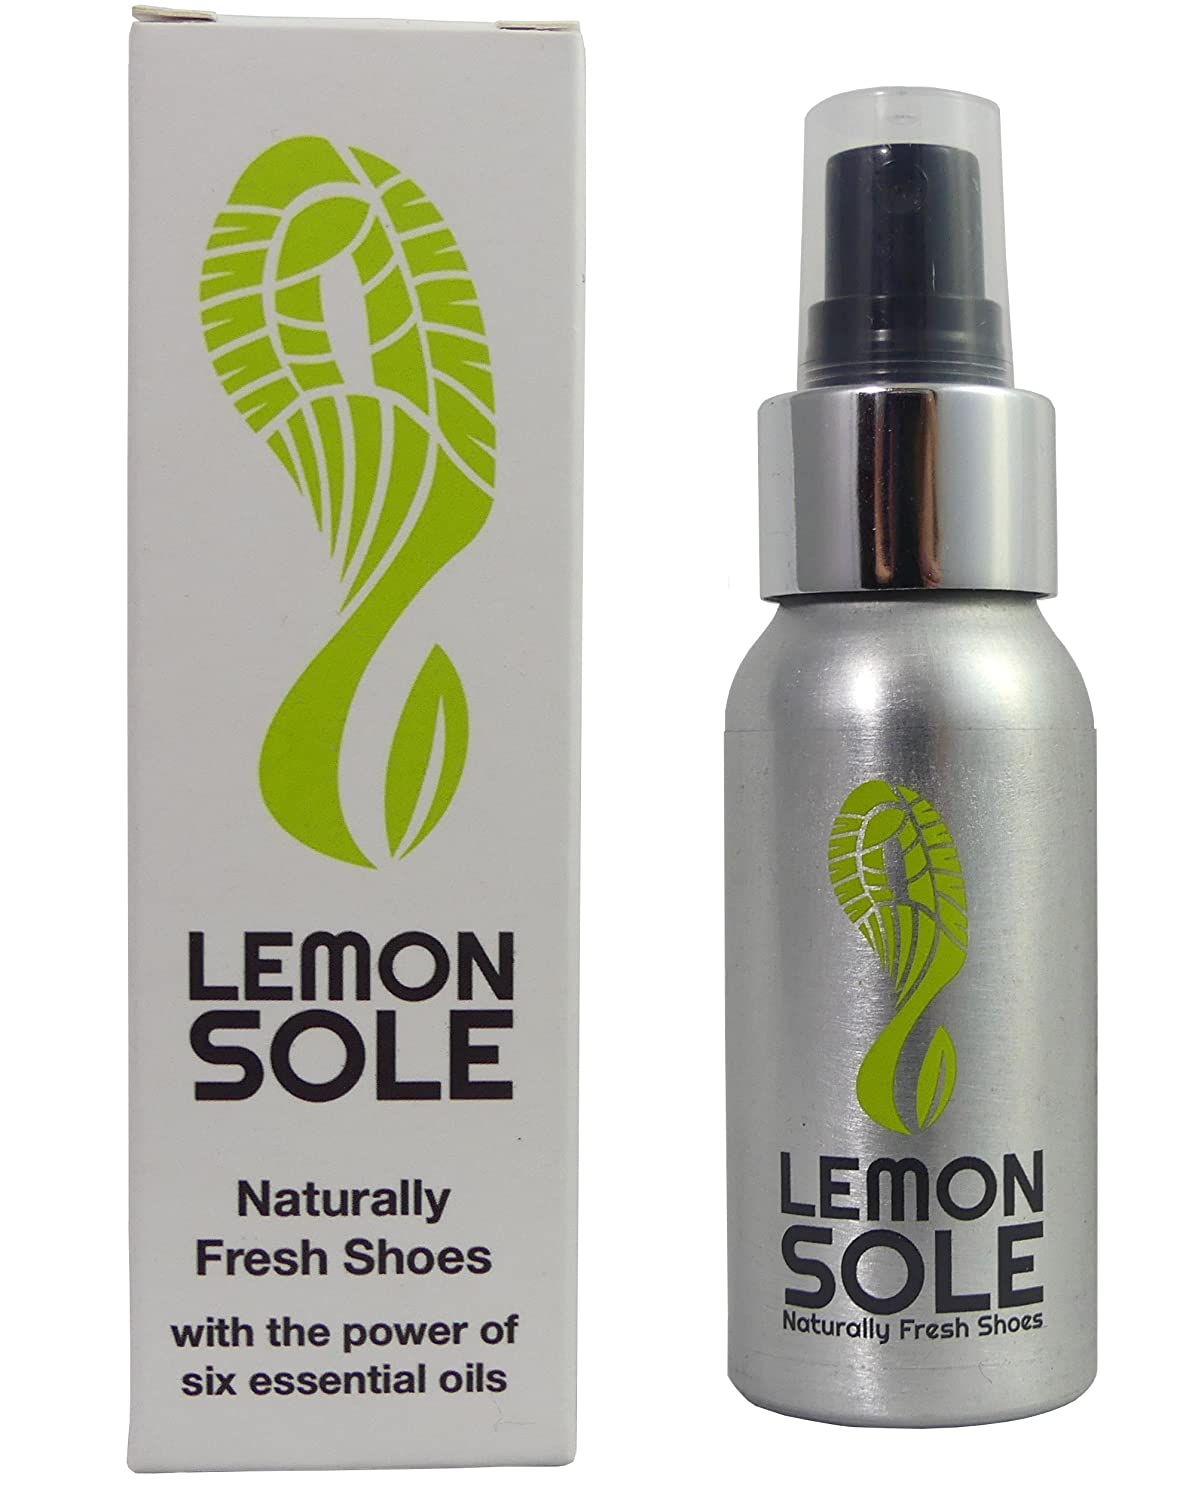 Lemon Sole - The POWERFUL shoe spray with 6 essential oils. Great for Sport. 100% Natural